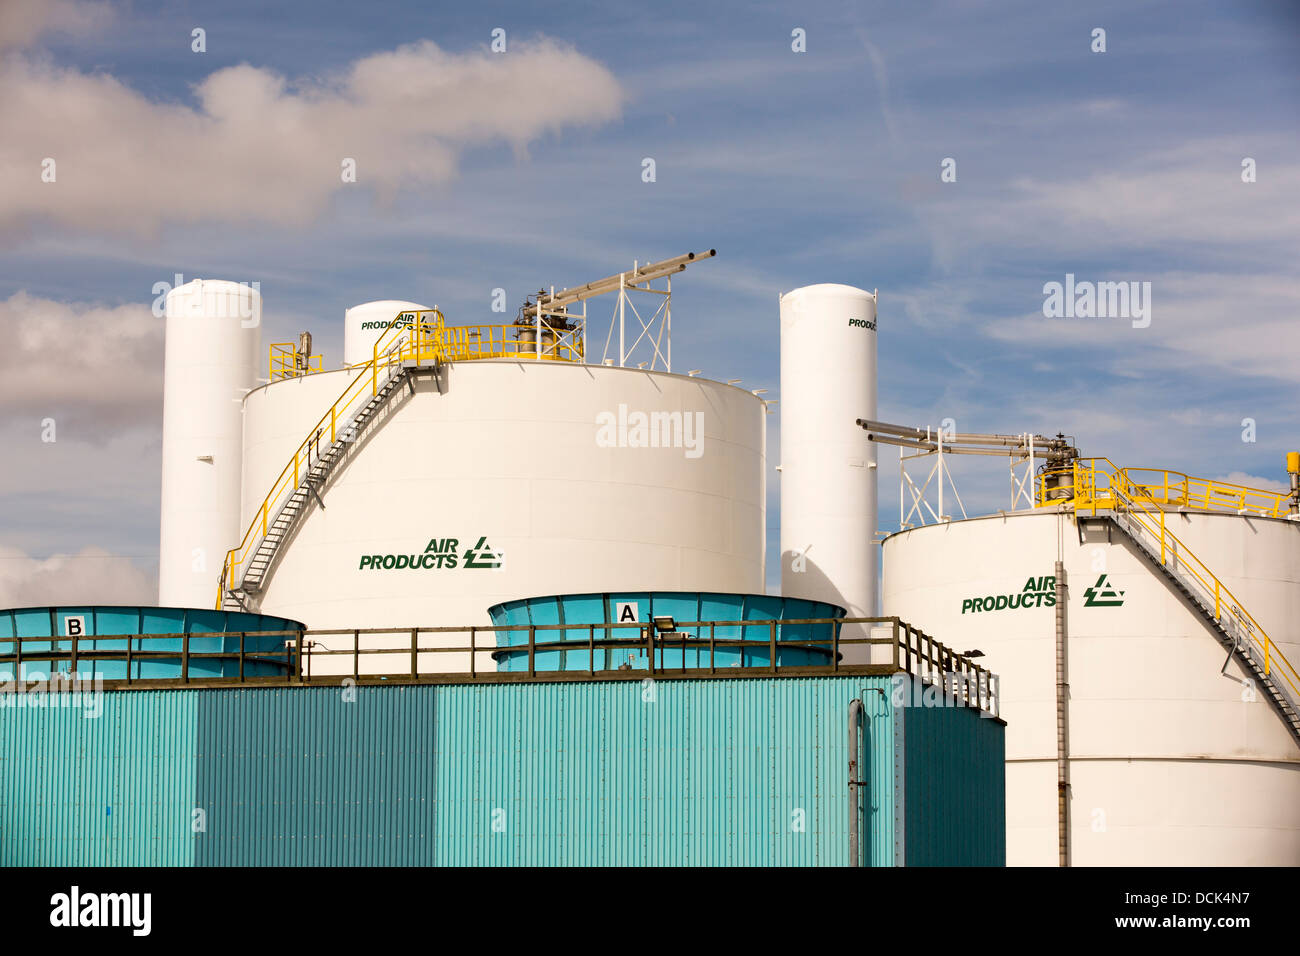 An air products manufacturing plant near Hull, Yorkshire, UK. - Stock Image